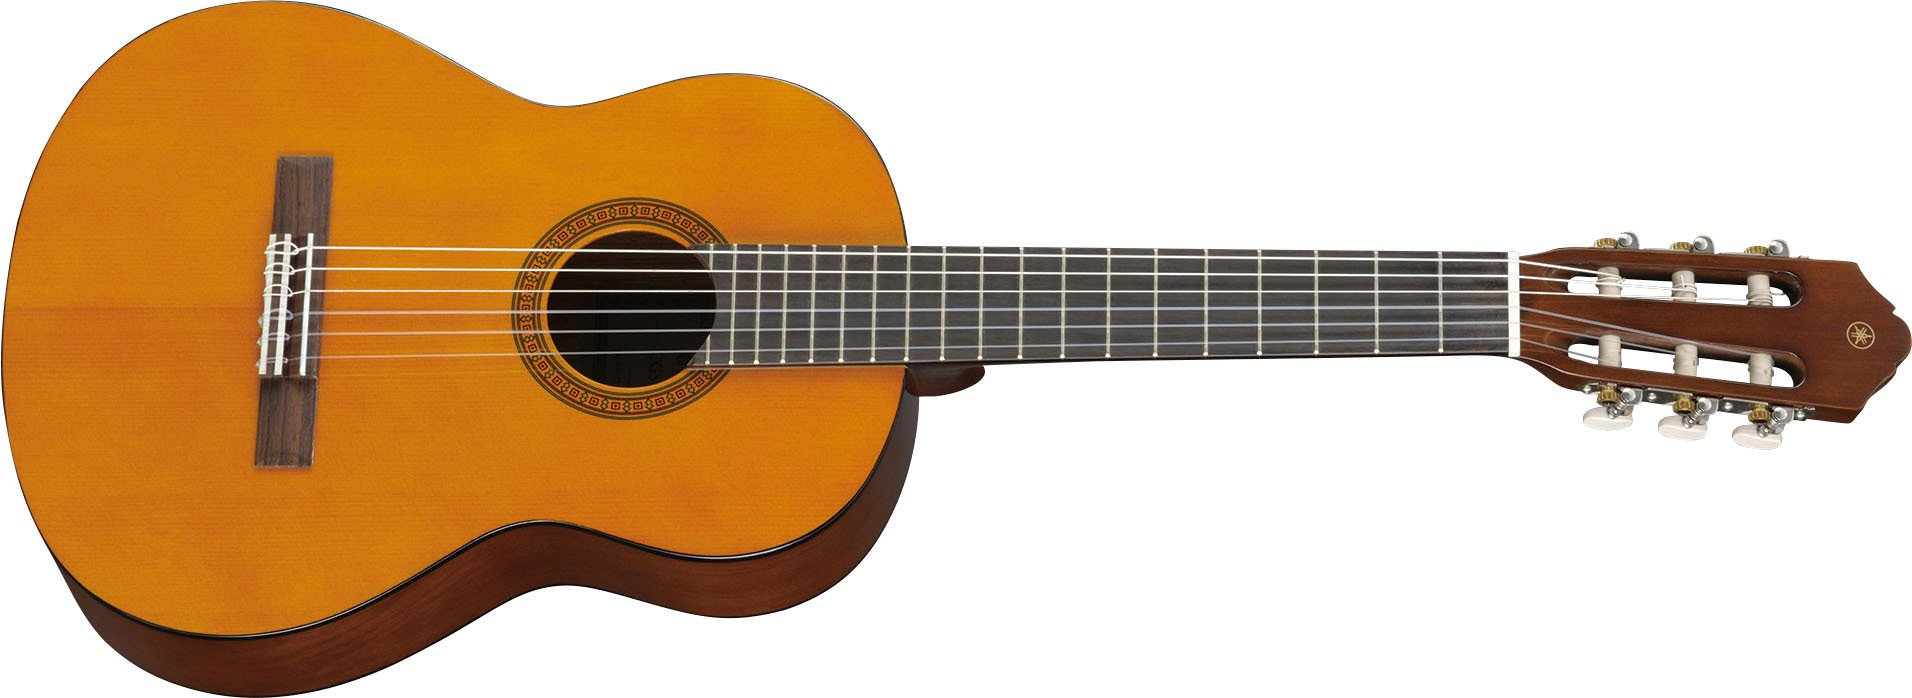 Gloss Finish CGS Series 1/2-Scale Classical Acoustic Guitar